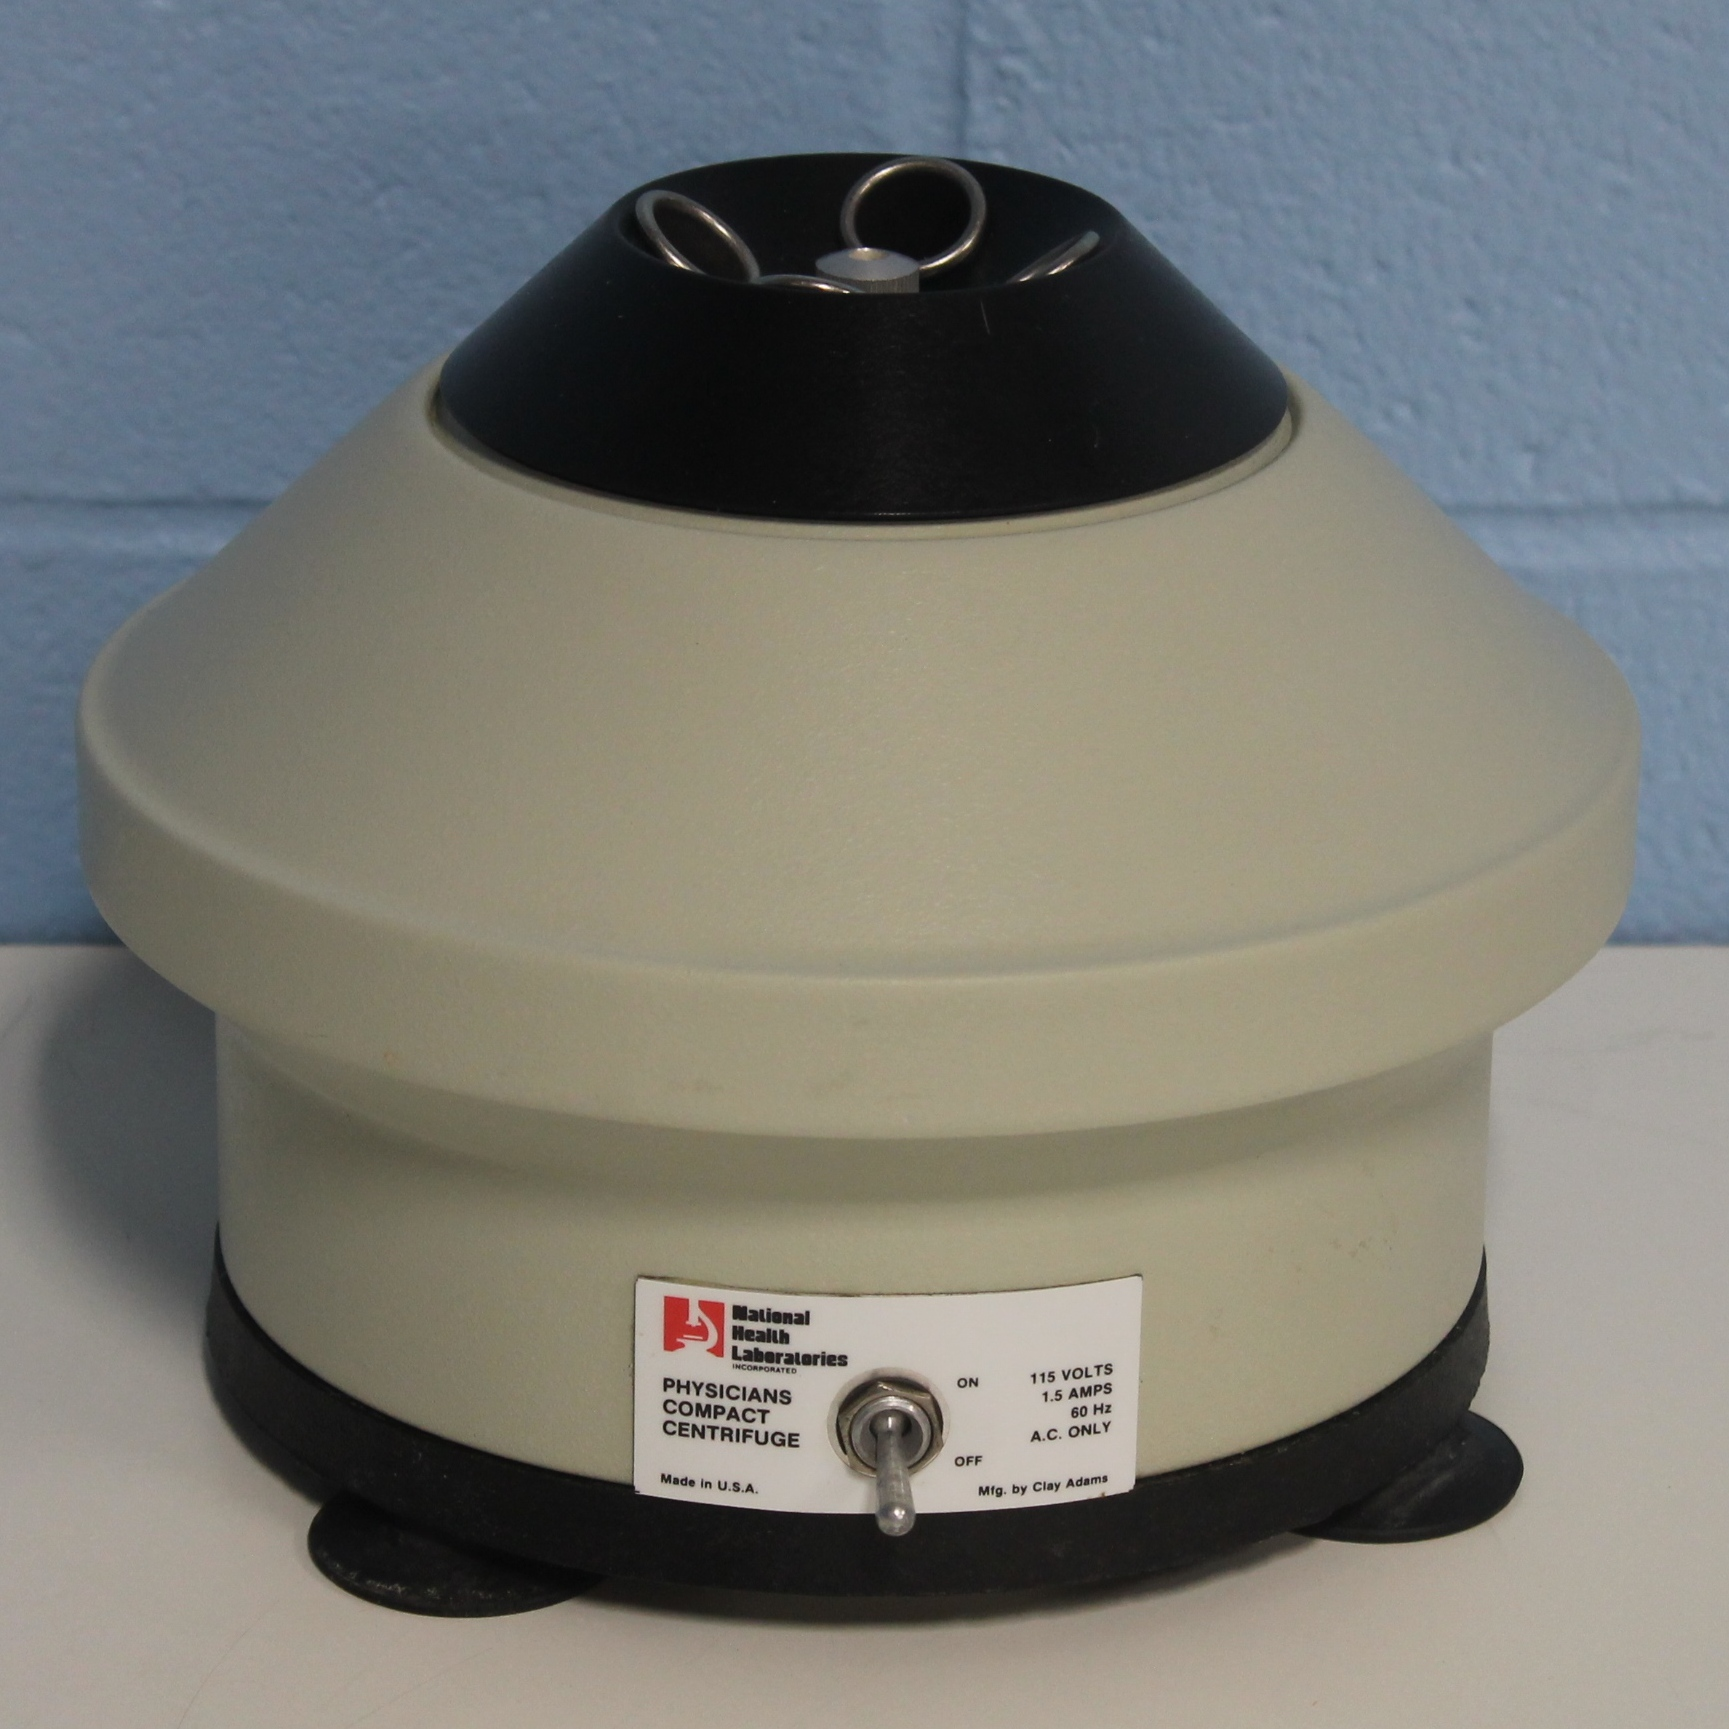 Physicians Compact Centrifuge CAT No. 0131